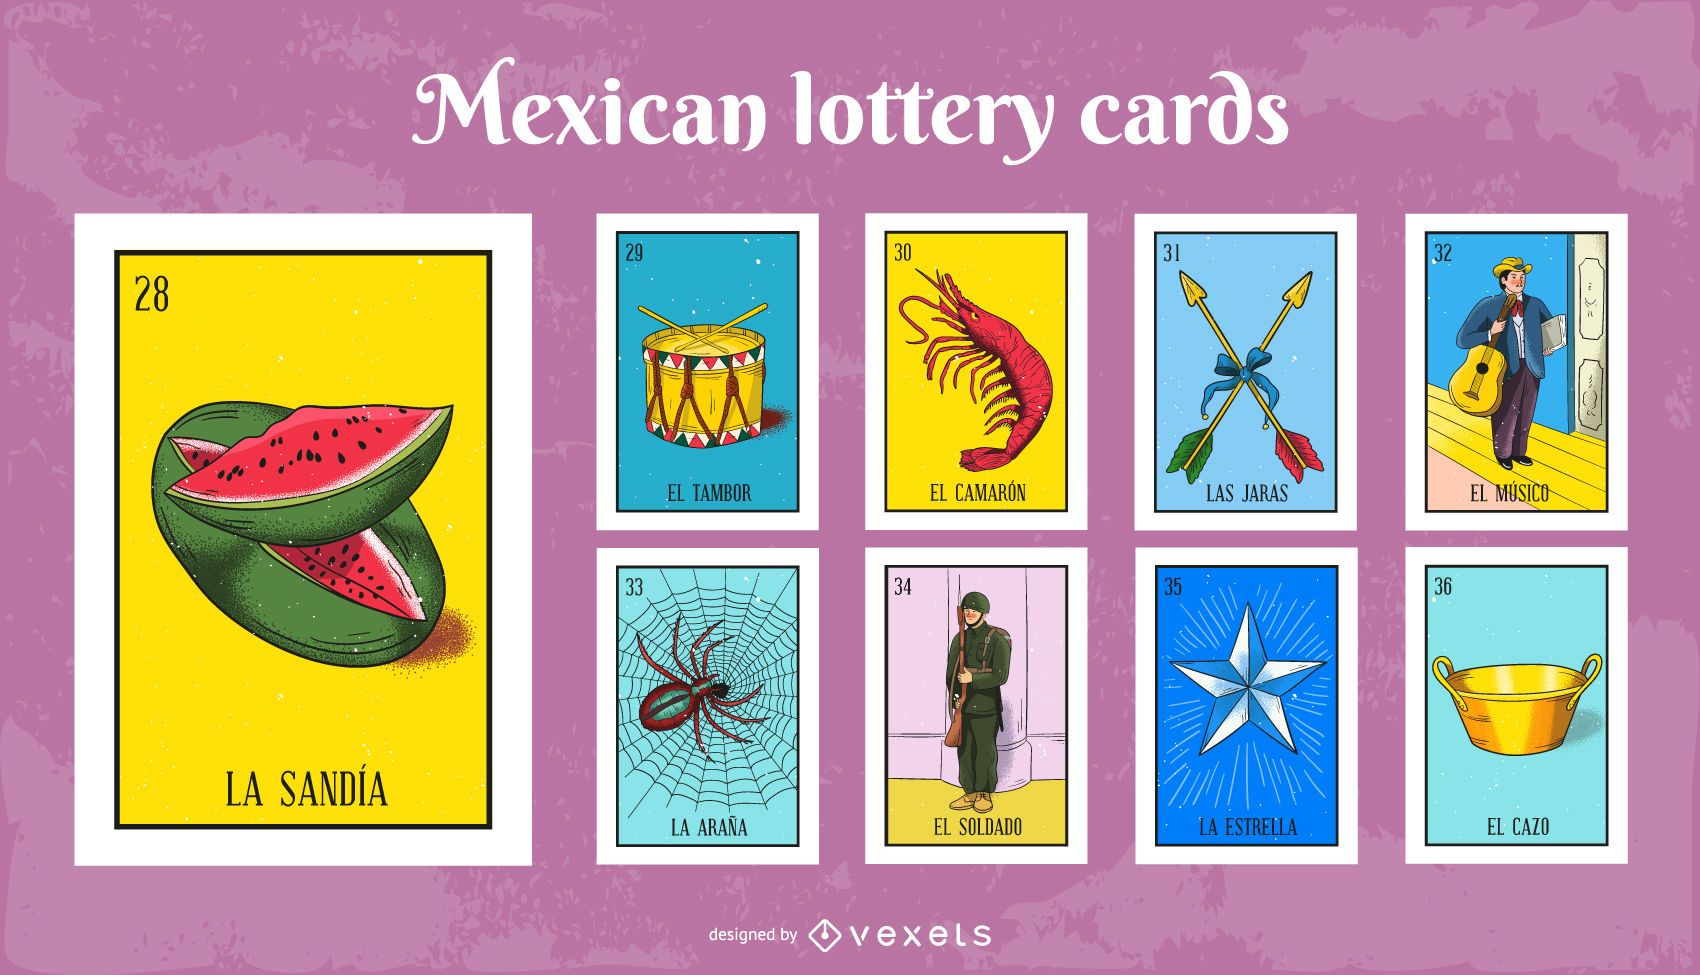 Mexican lottery cards set